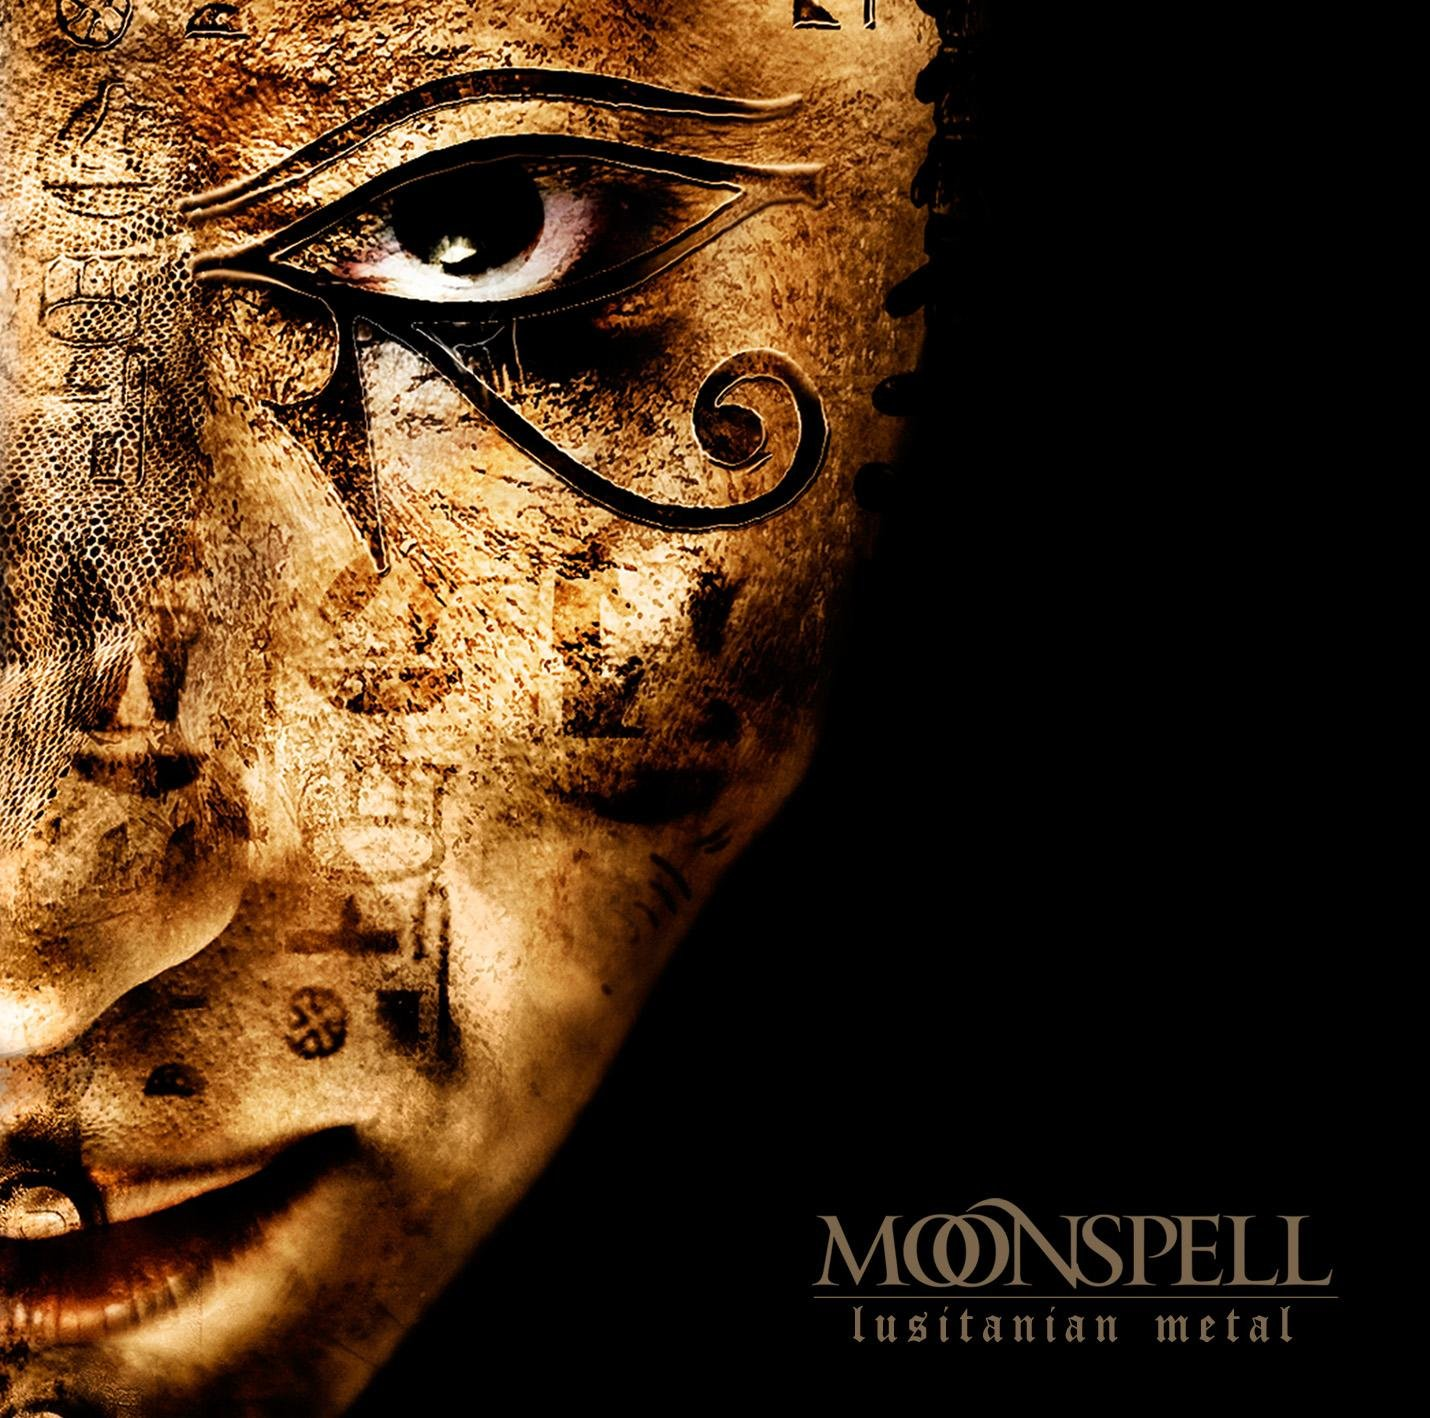 Moonspell - Lusitanian Metal (2008) [FLAC] Download